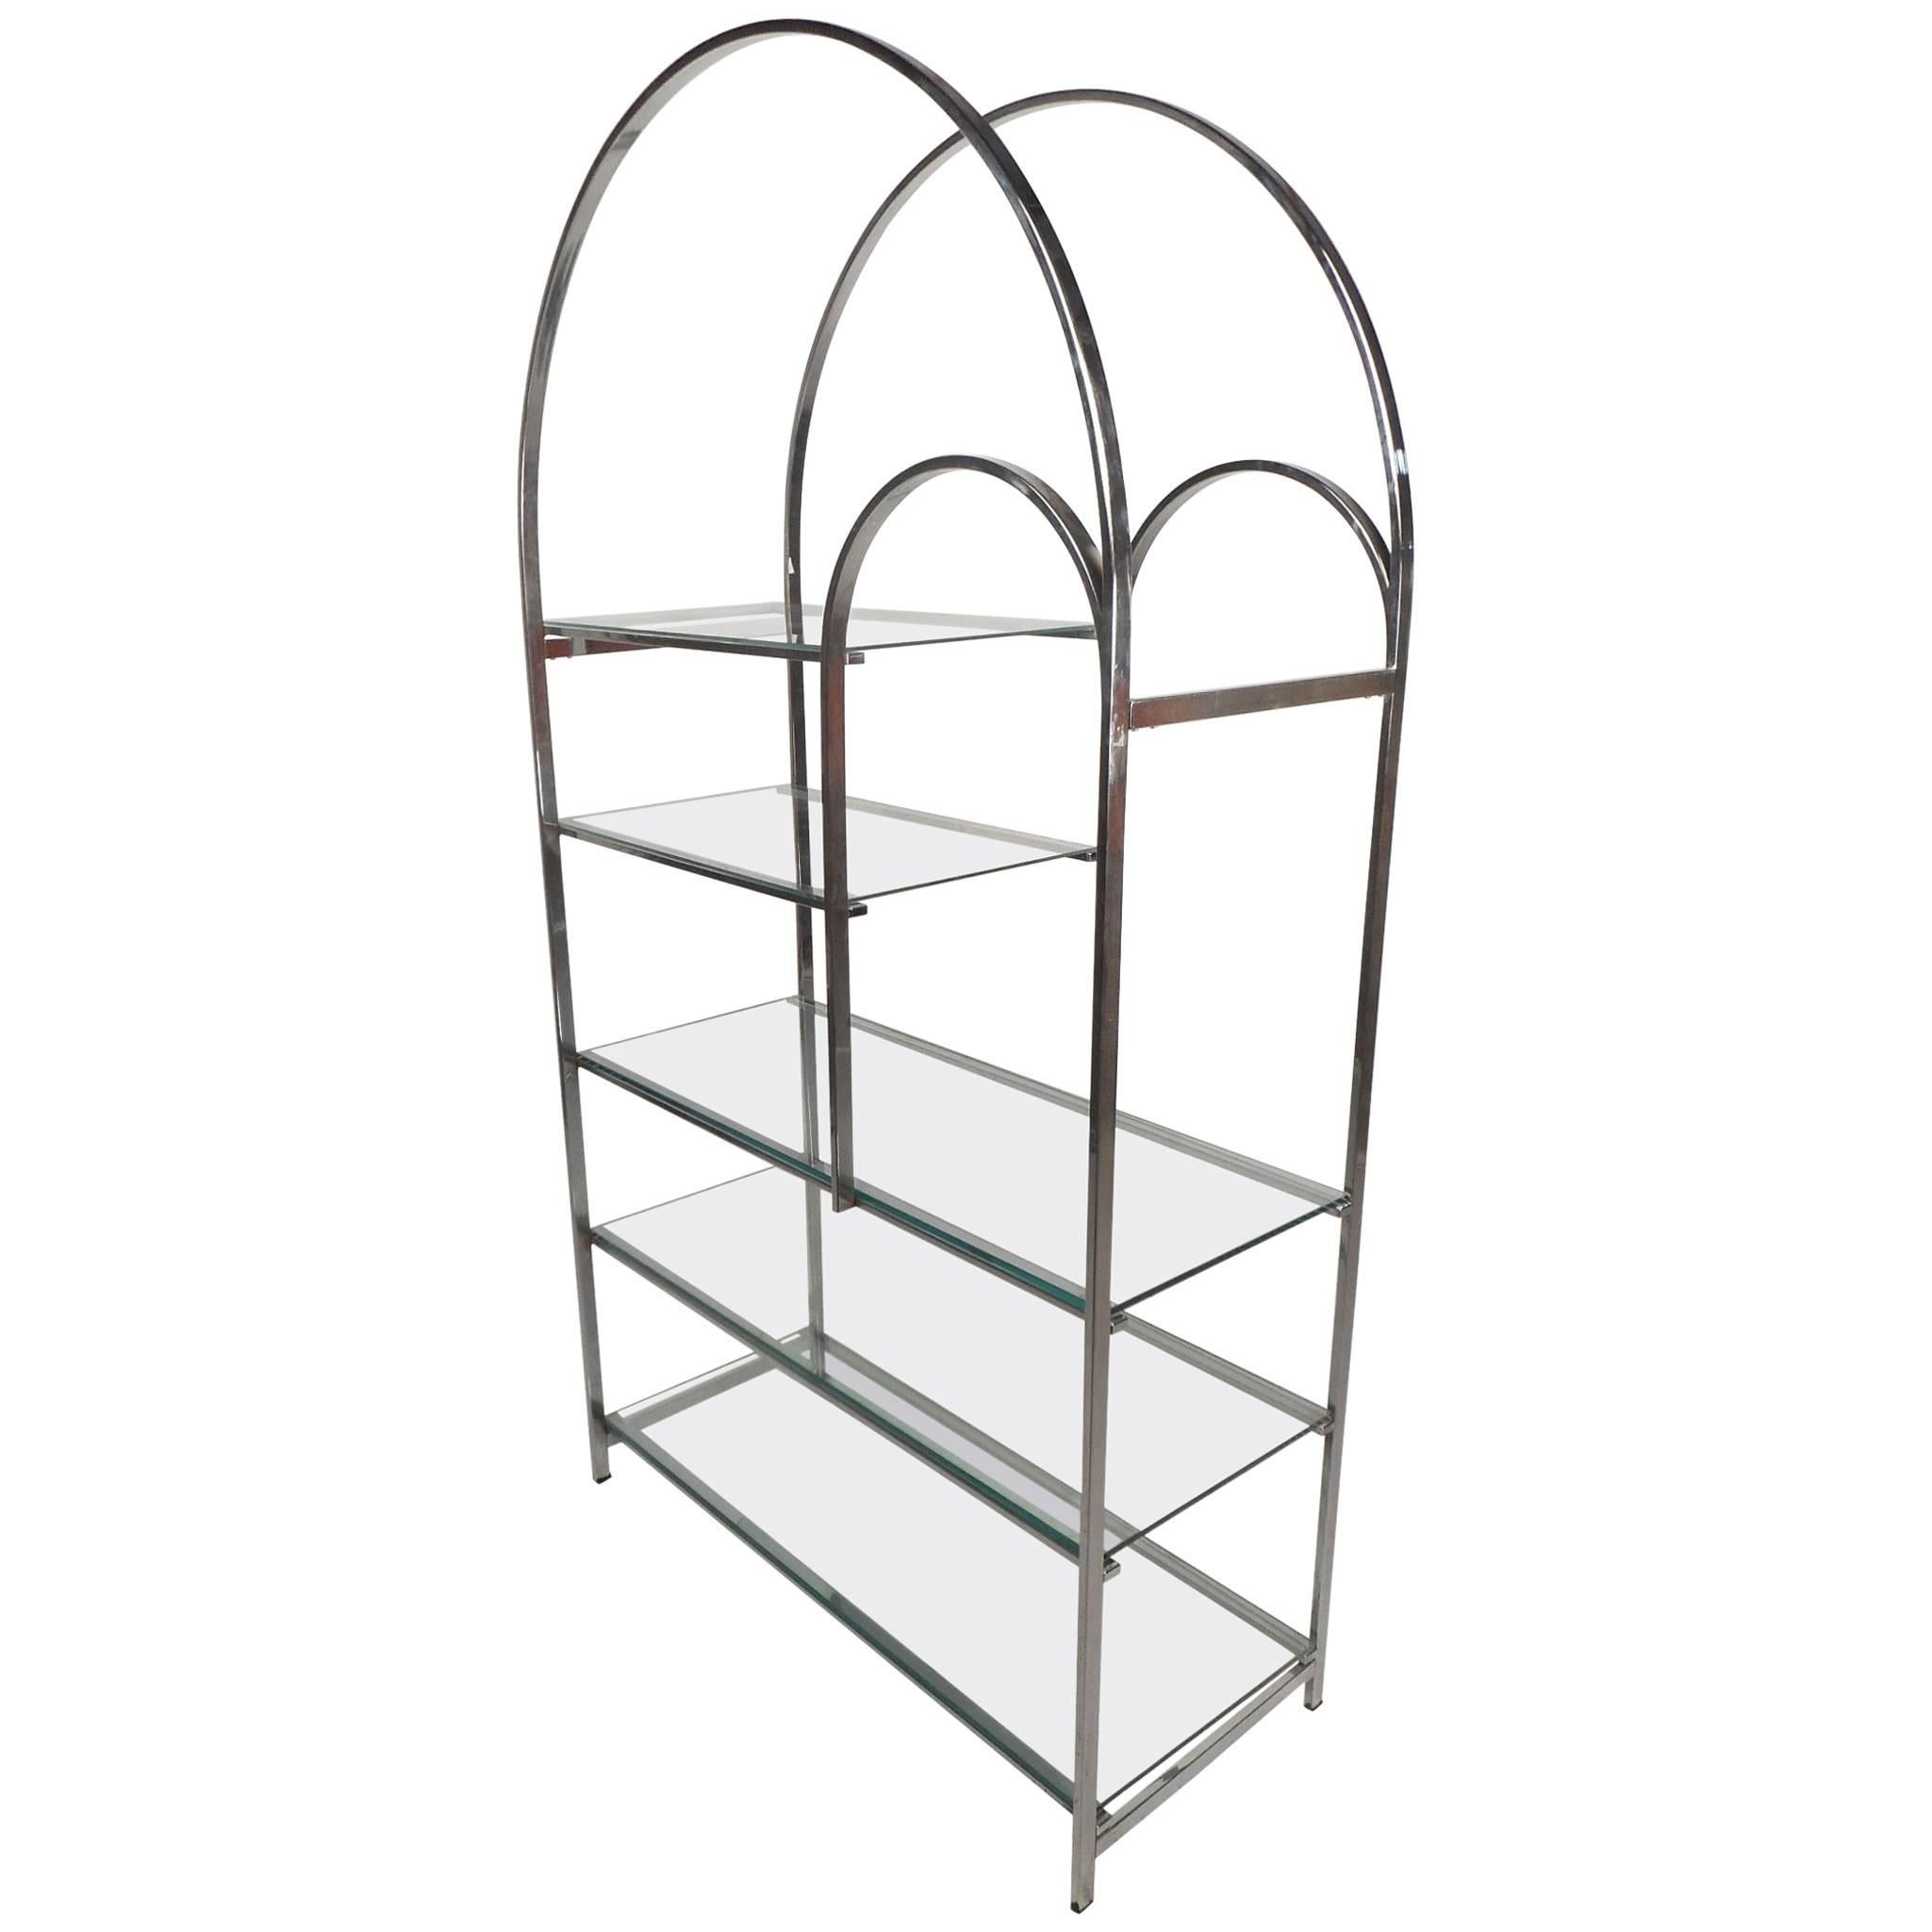 Exquisite Mid-Century Modern Chrome Étagère in the Style of Milo Baughman